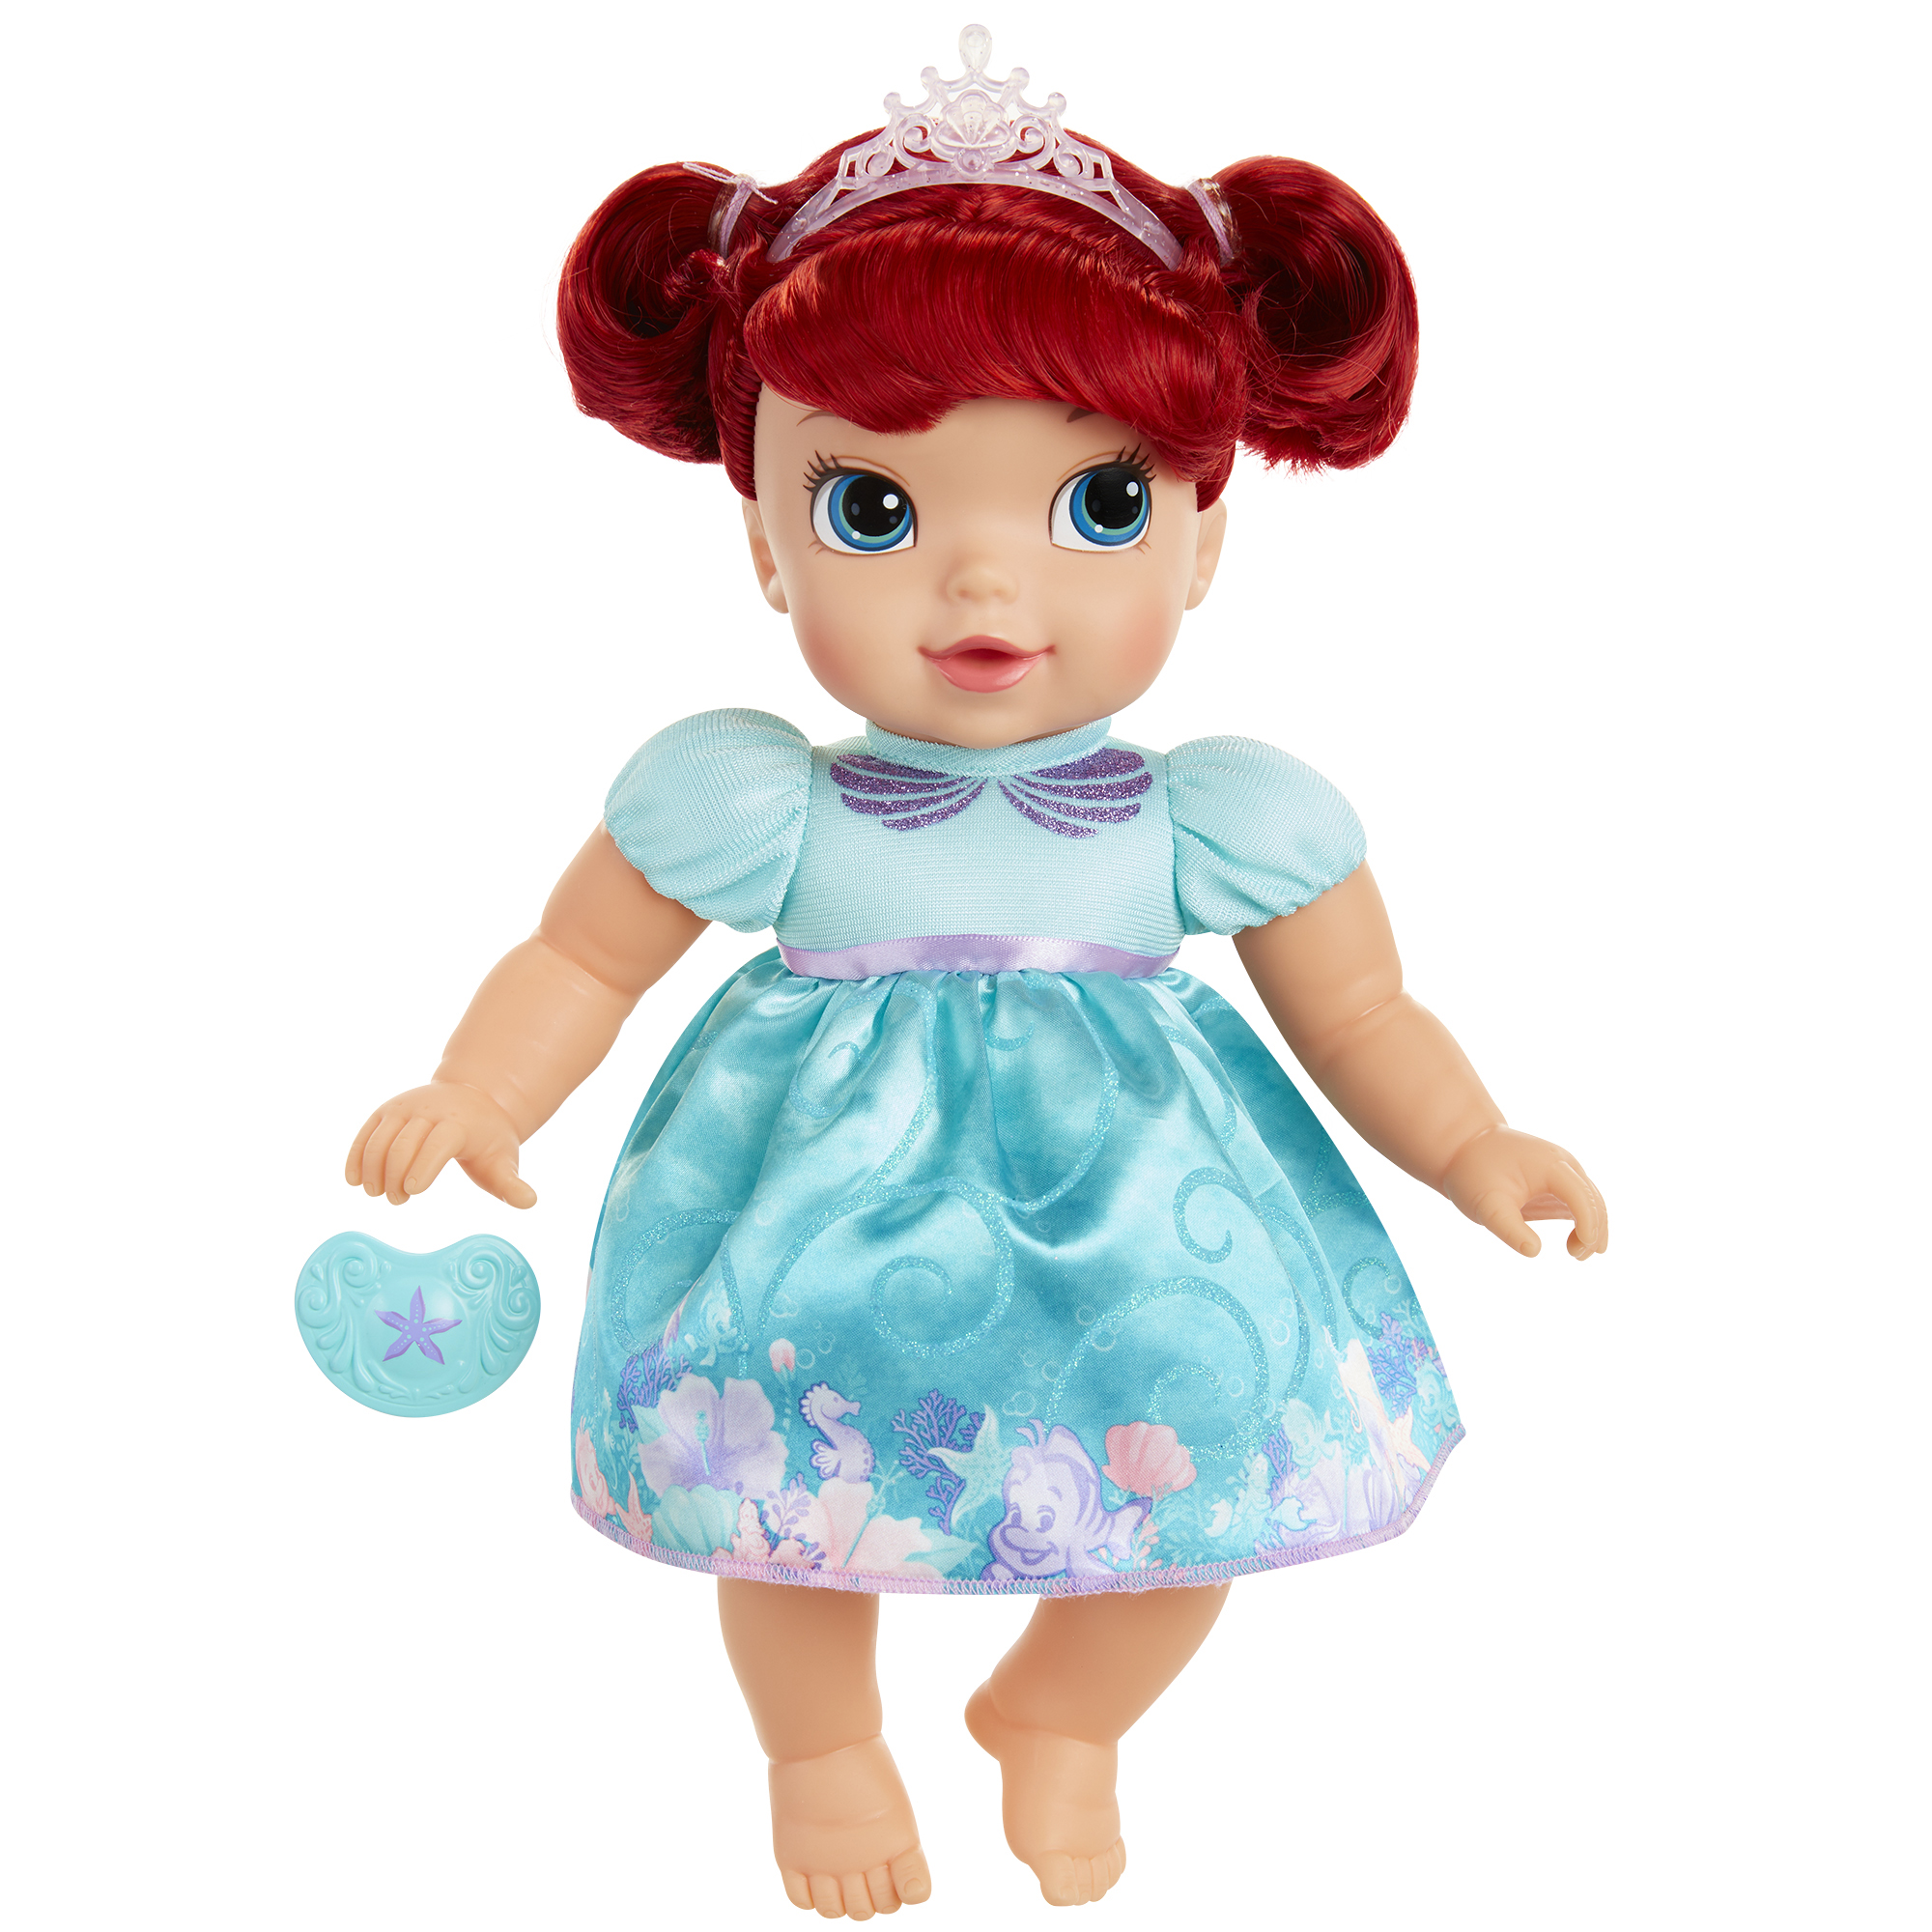 Ariel Deluxe Baby Doll with Pacifier Disney Princess